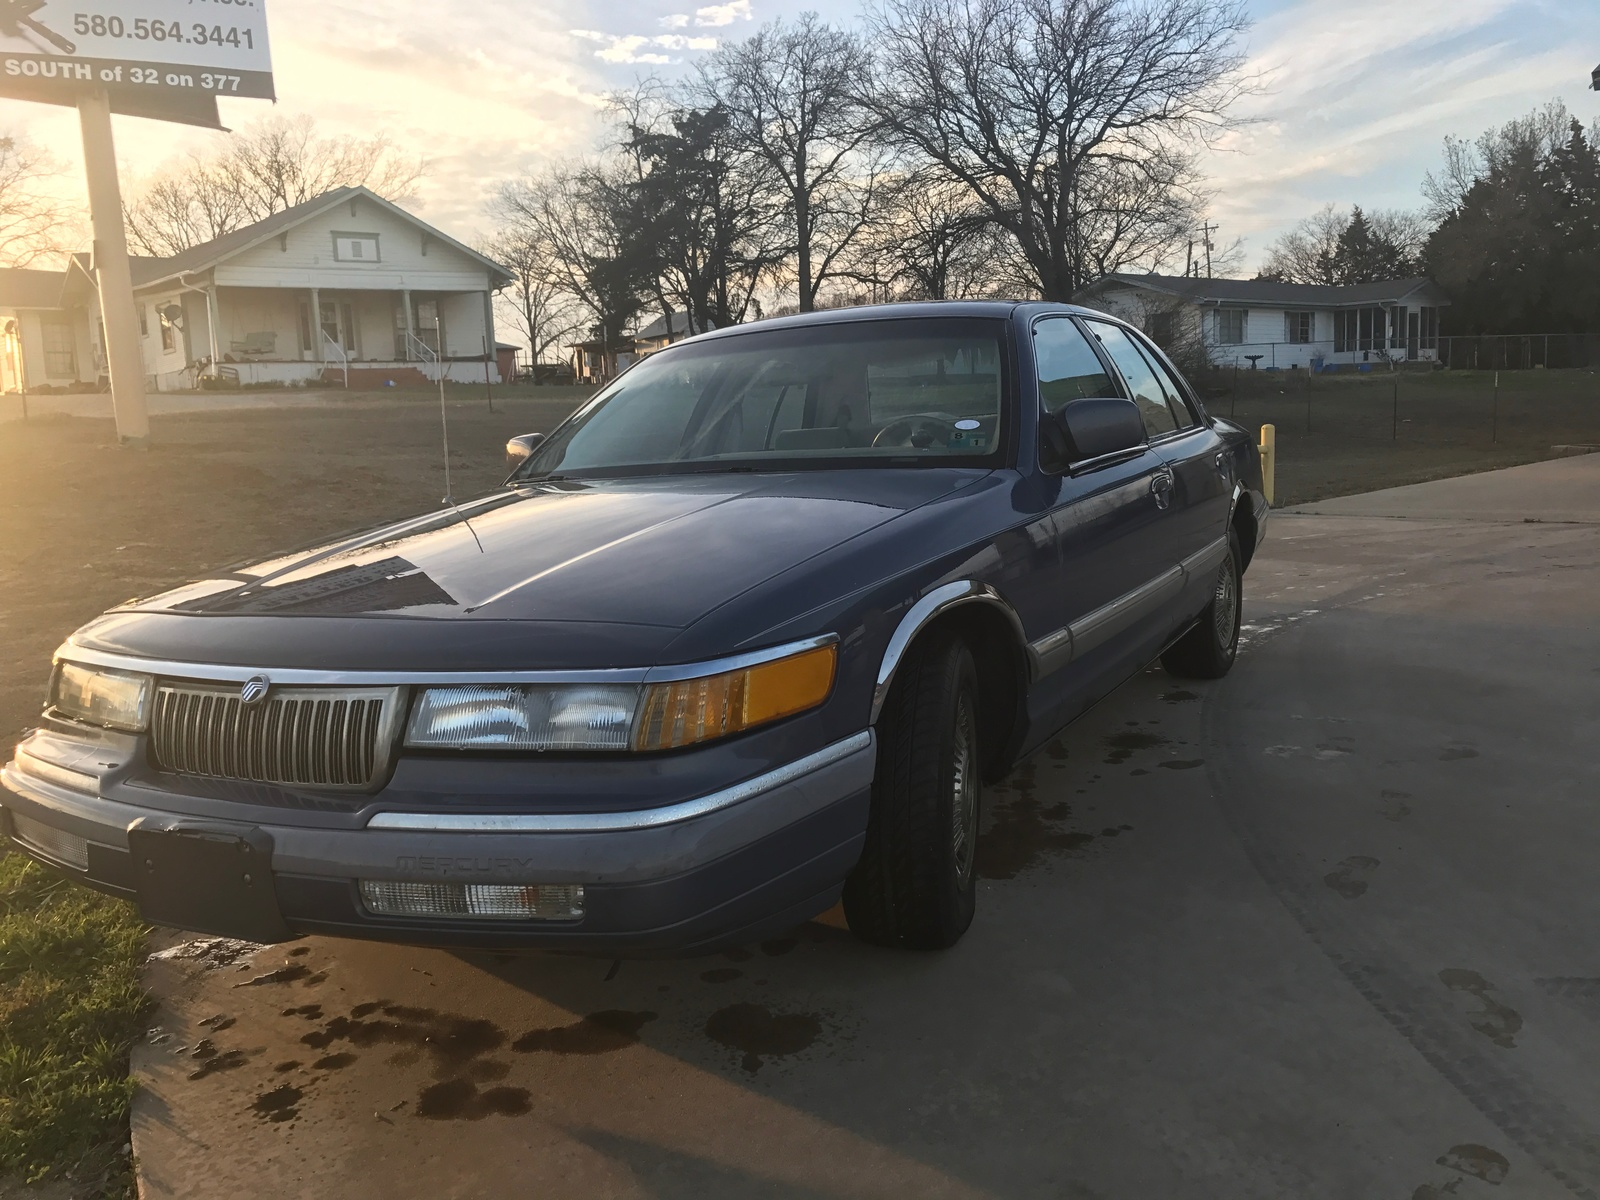 1992 Mercury Grand Marquis - Overview